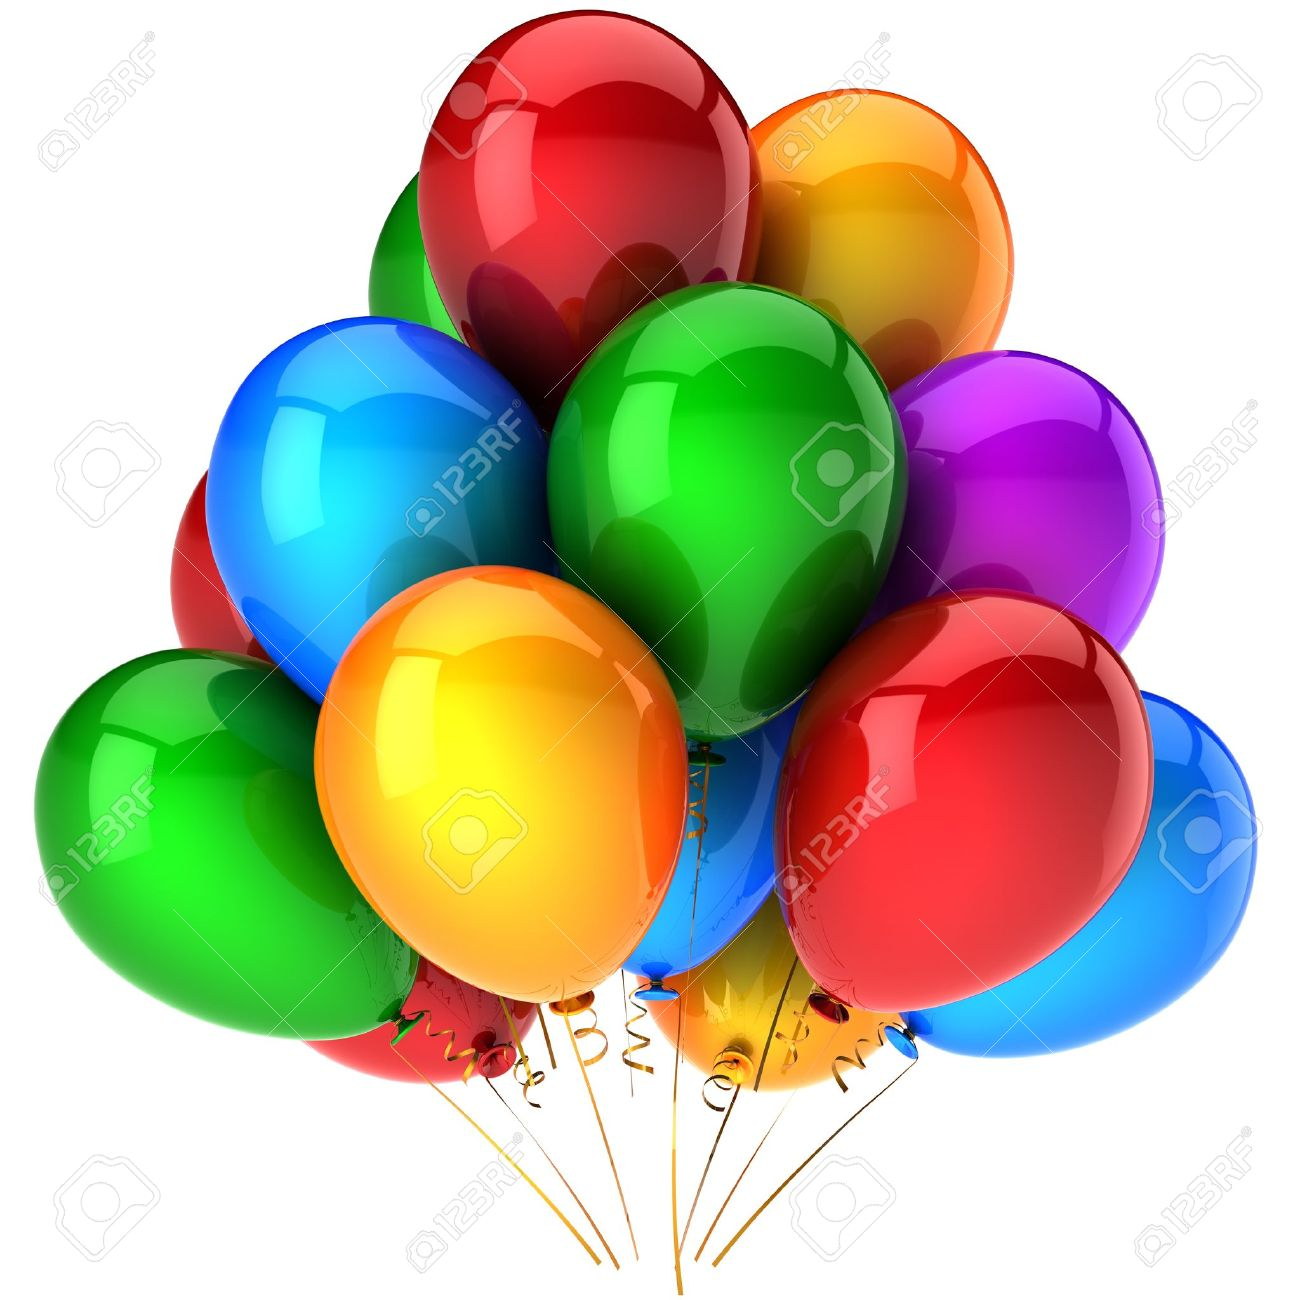 Party balloons multicolor. Shiny colorful birthday celebrate decoration.  Positive joyful happiness abstract. This